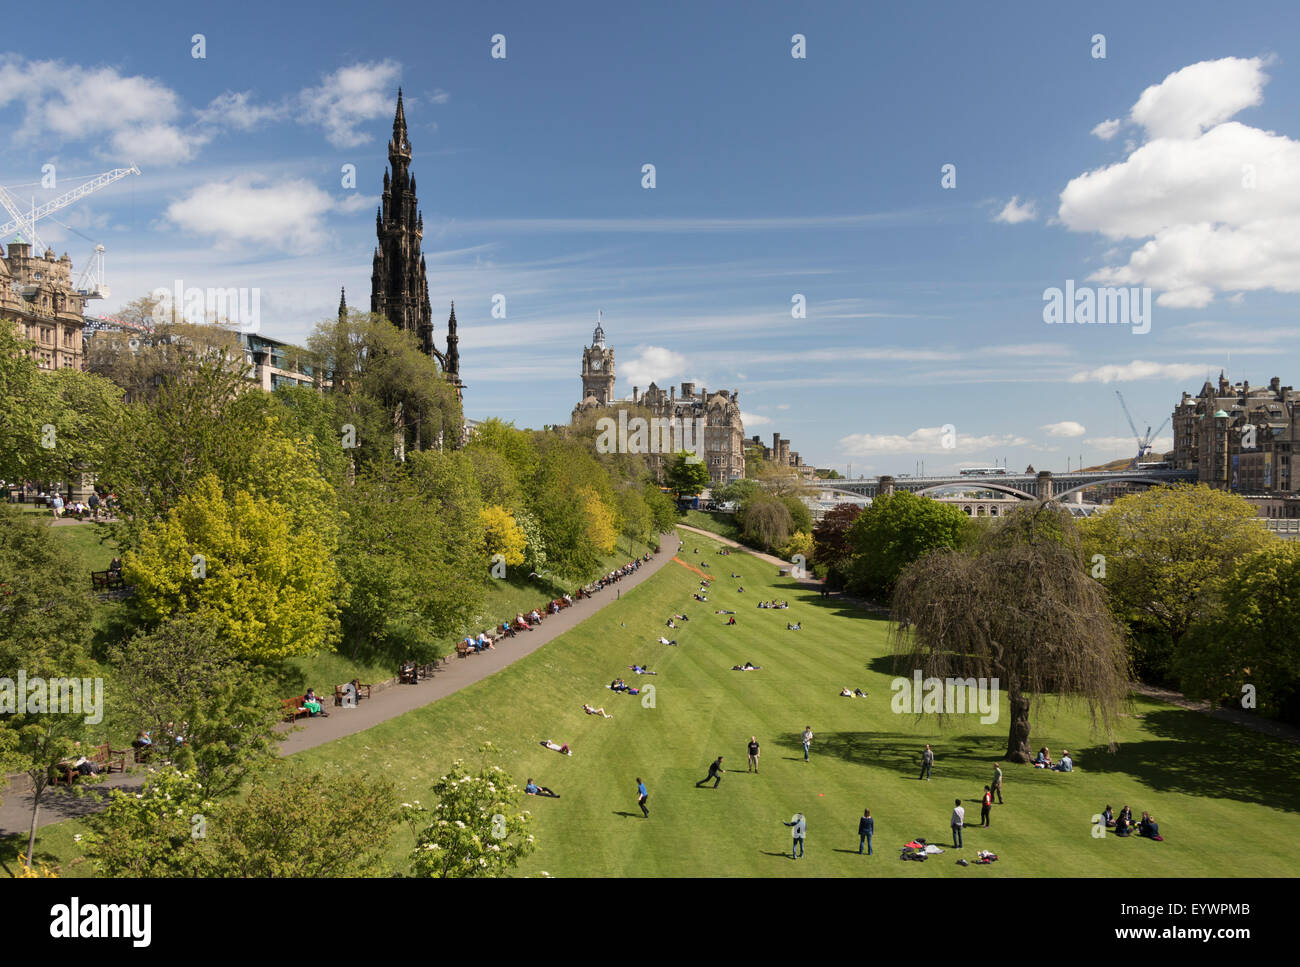 Scott Monument and Princes Street Gardens, Edinburgh, Scotland, United Kingdom, Europe - Stock Image